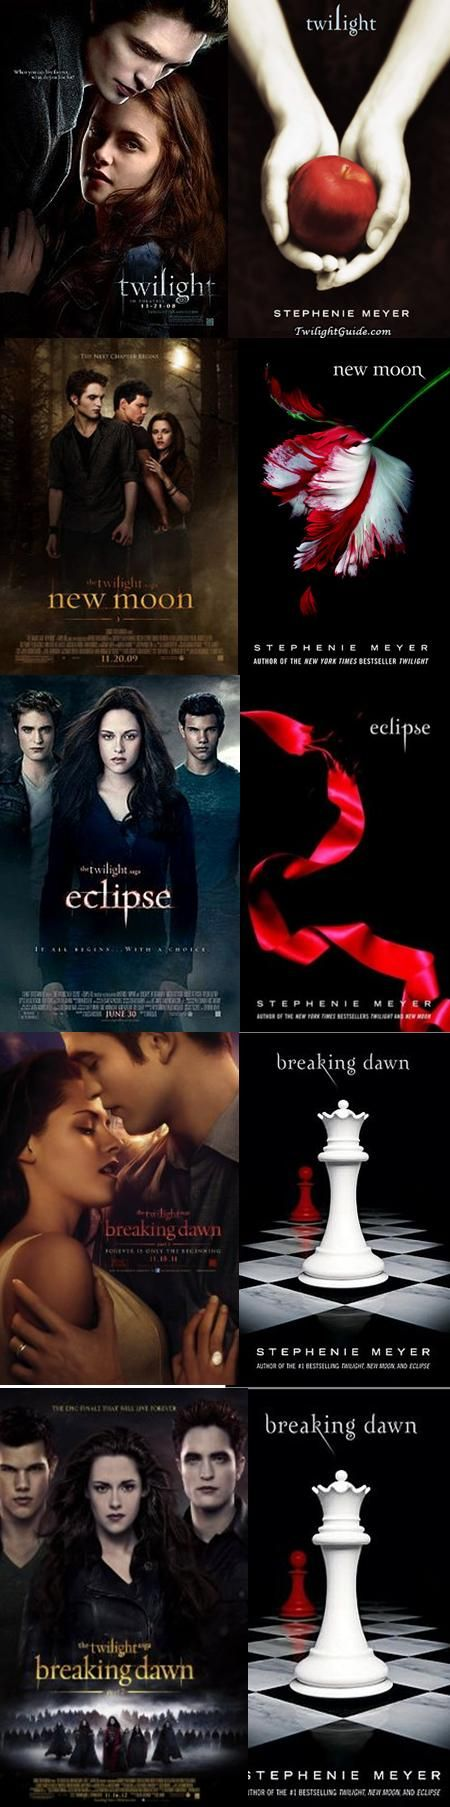 The Twilight Saga, Movies & Books